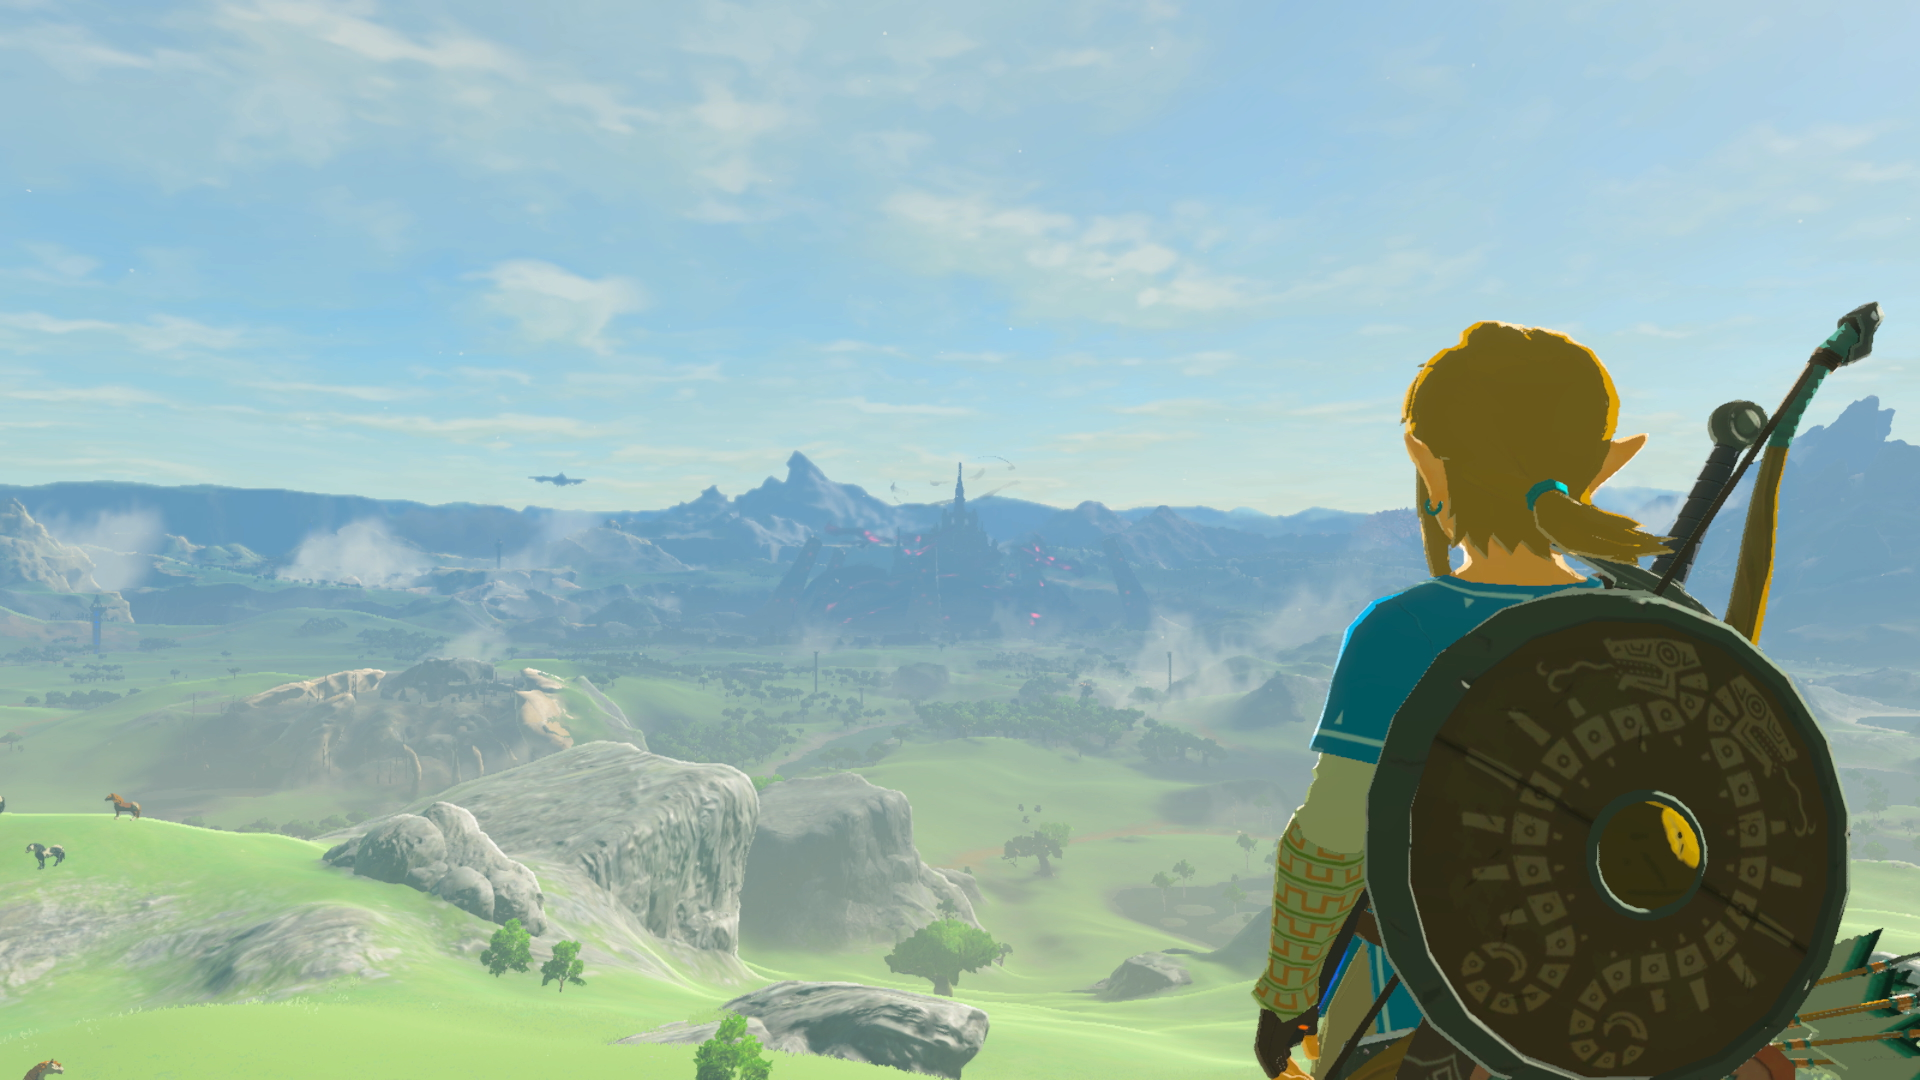 See that tower in the middle of the screen all the way in the distance? I want to go to there. And I can!